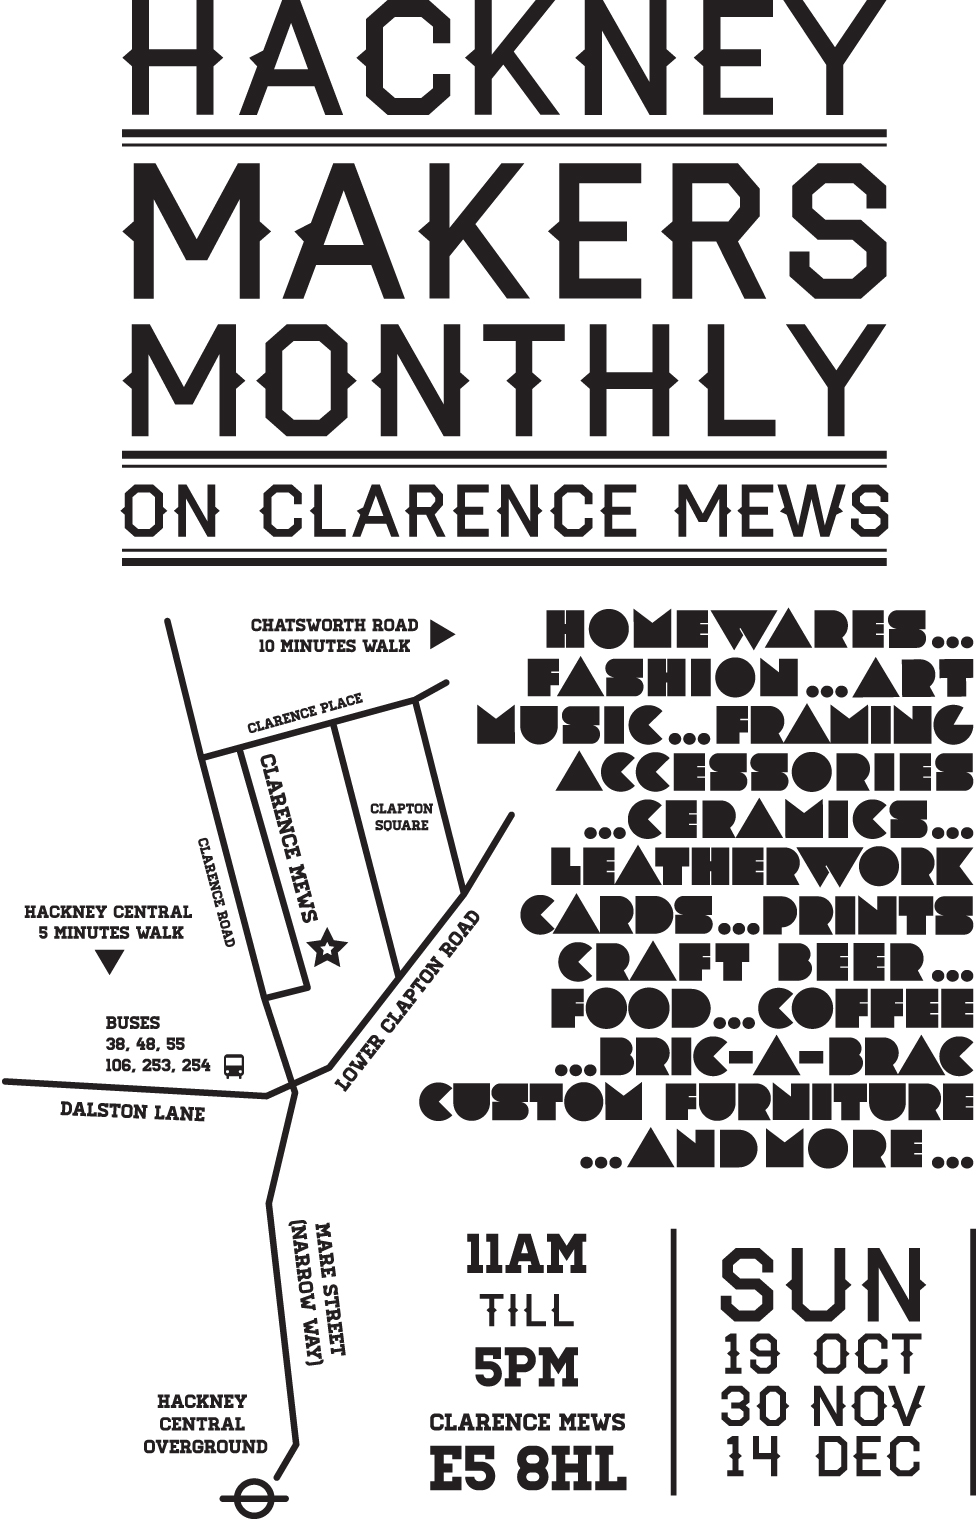 HACKNEY MAKERS MONTHLY_POSTER_v2